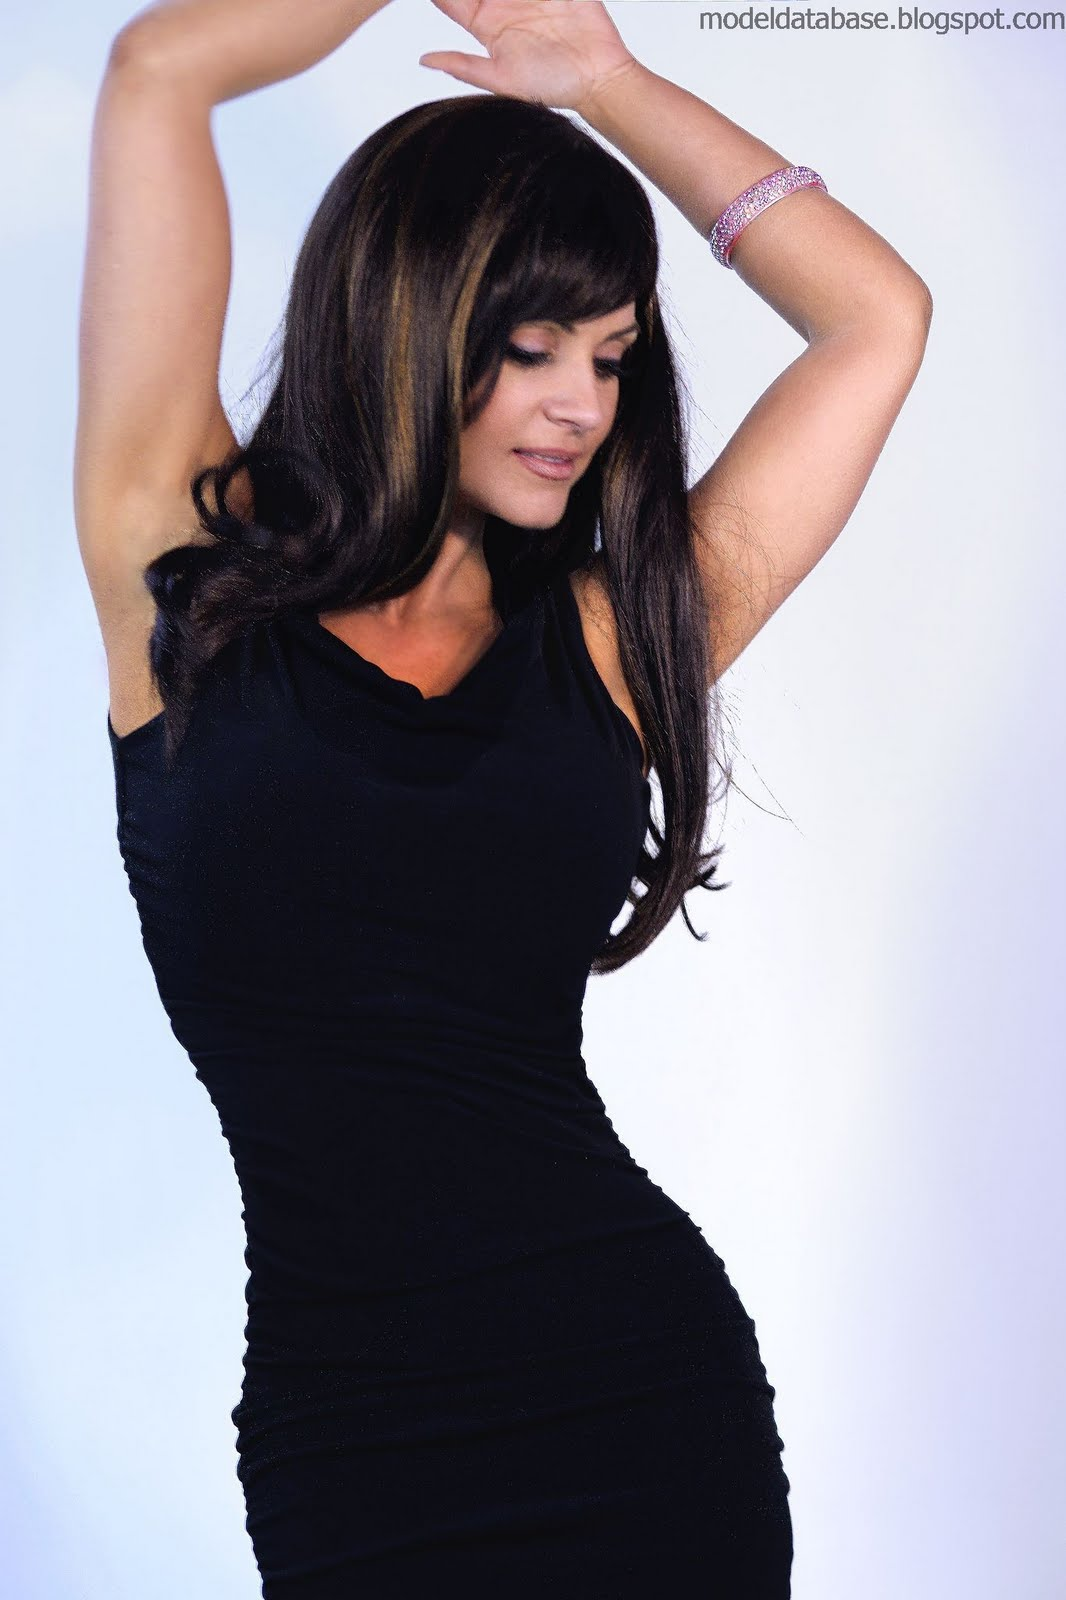 denise milani in a dress - photo #25